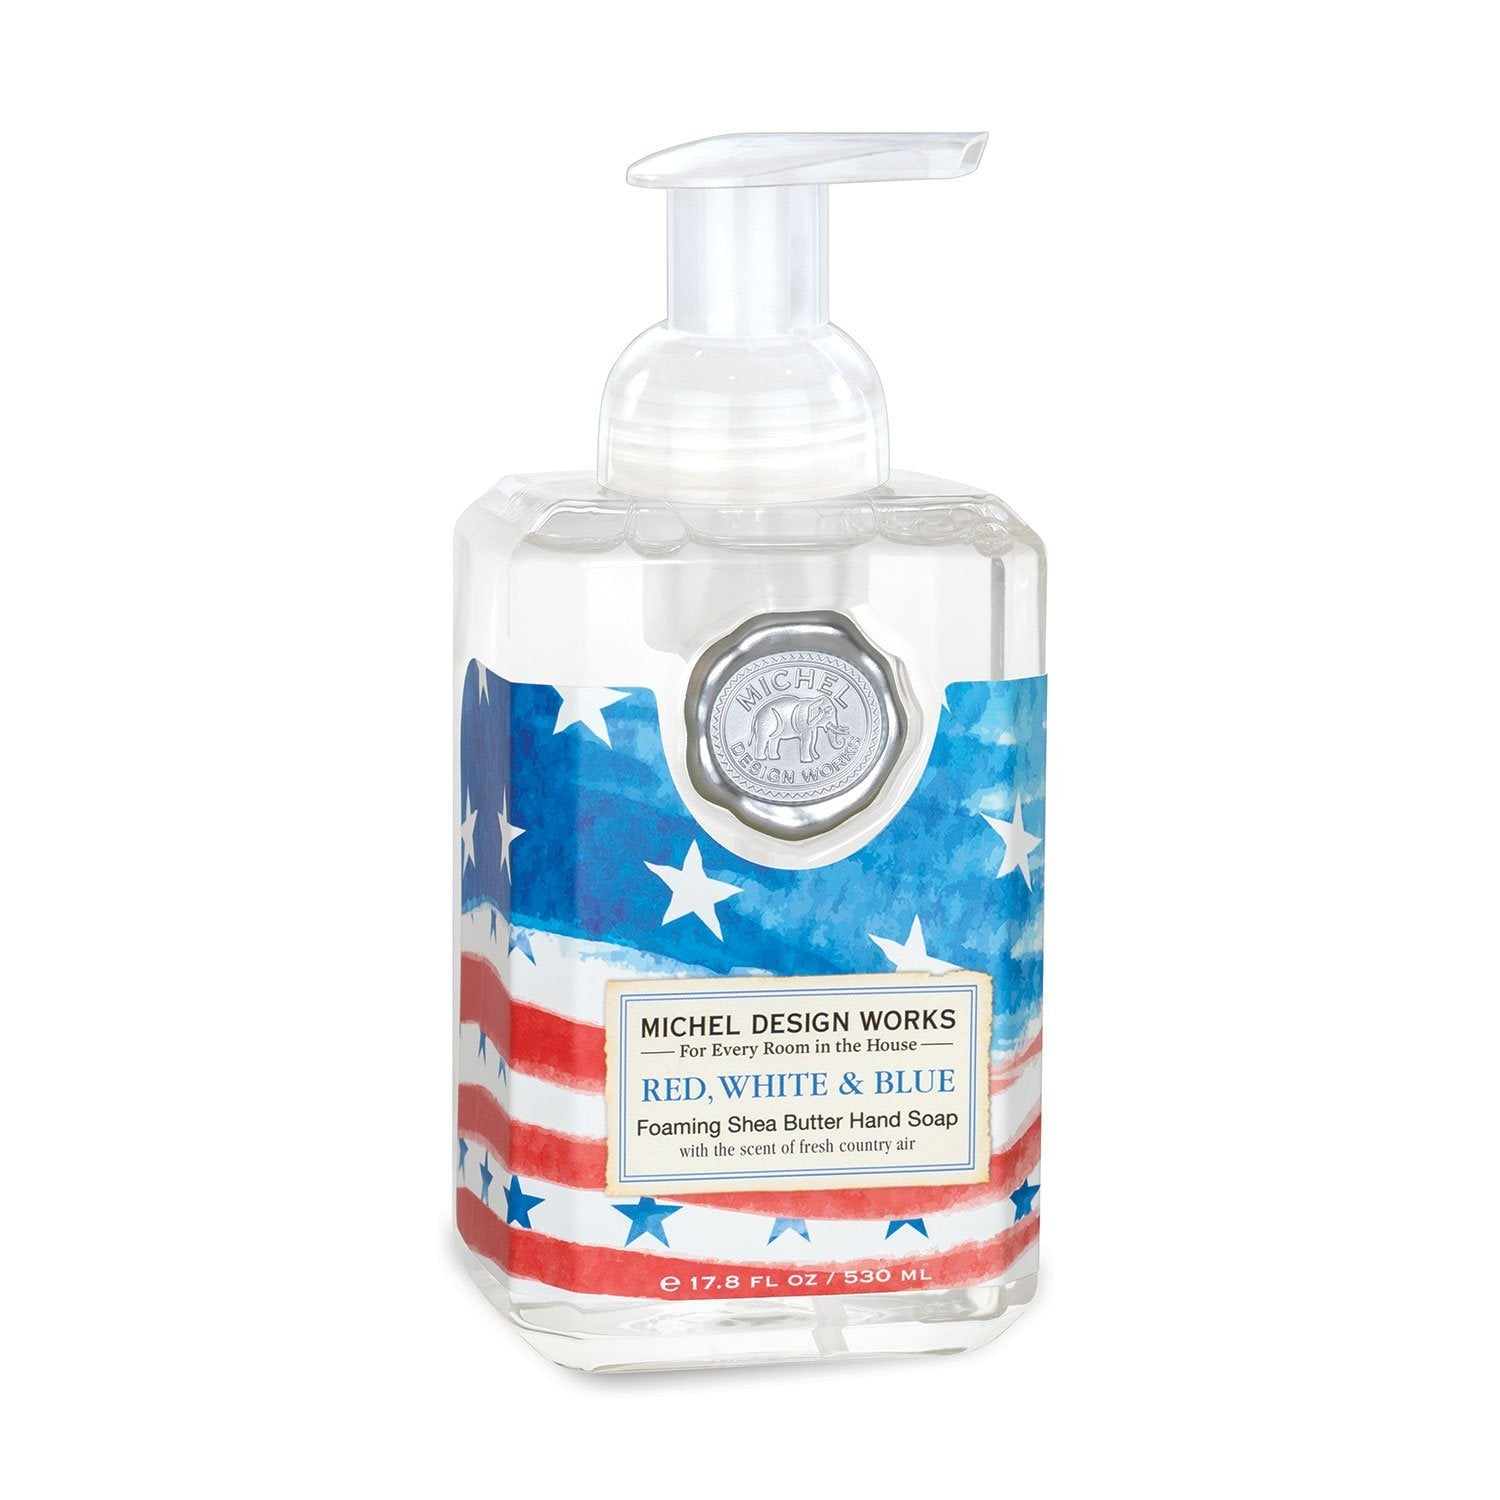 Red, White & Blue - Foaming Hand Soap